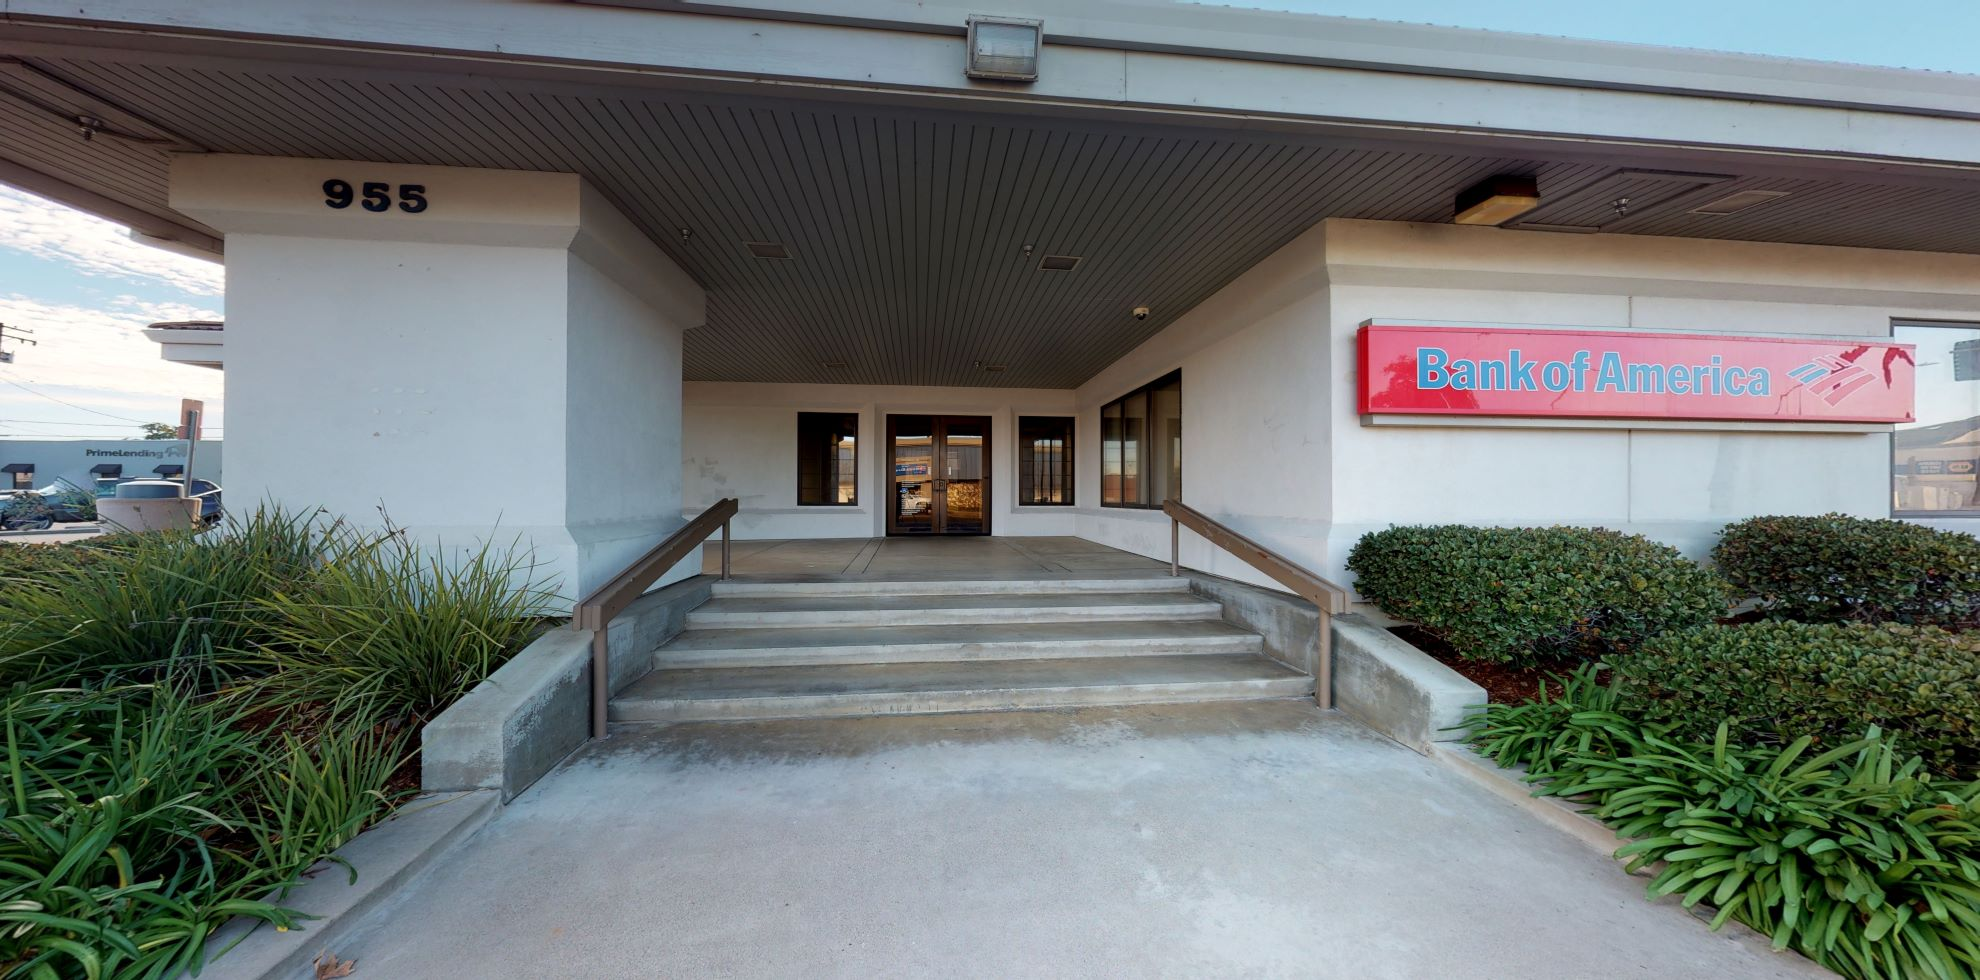 Bank of America financial center with walk-up ATM   955 Main St, Red Bluff, CA 96080